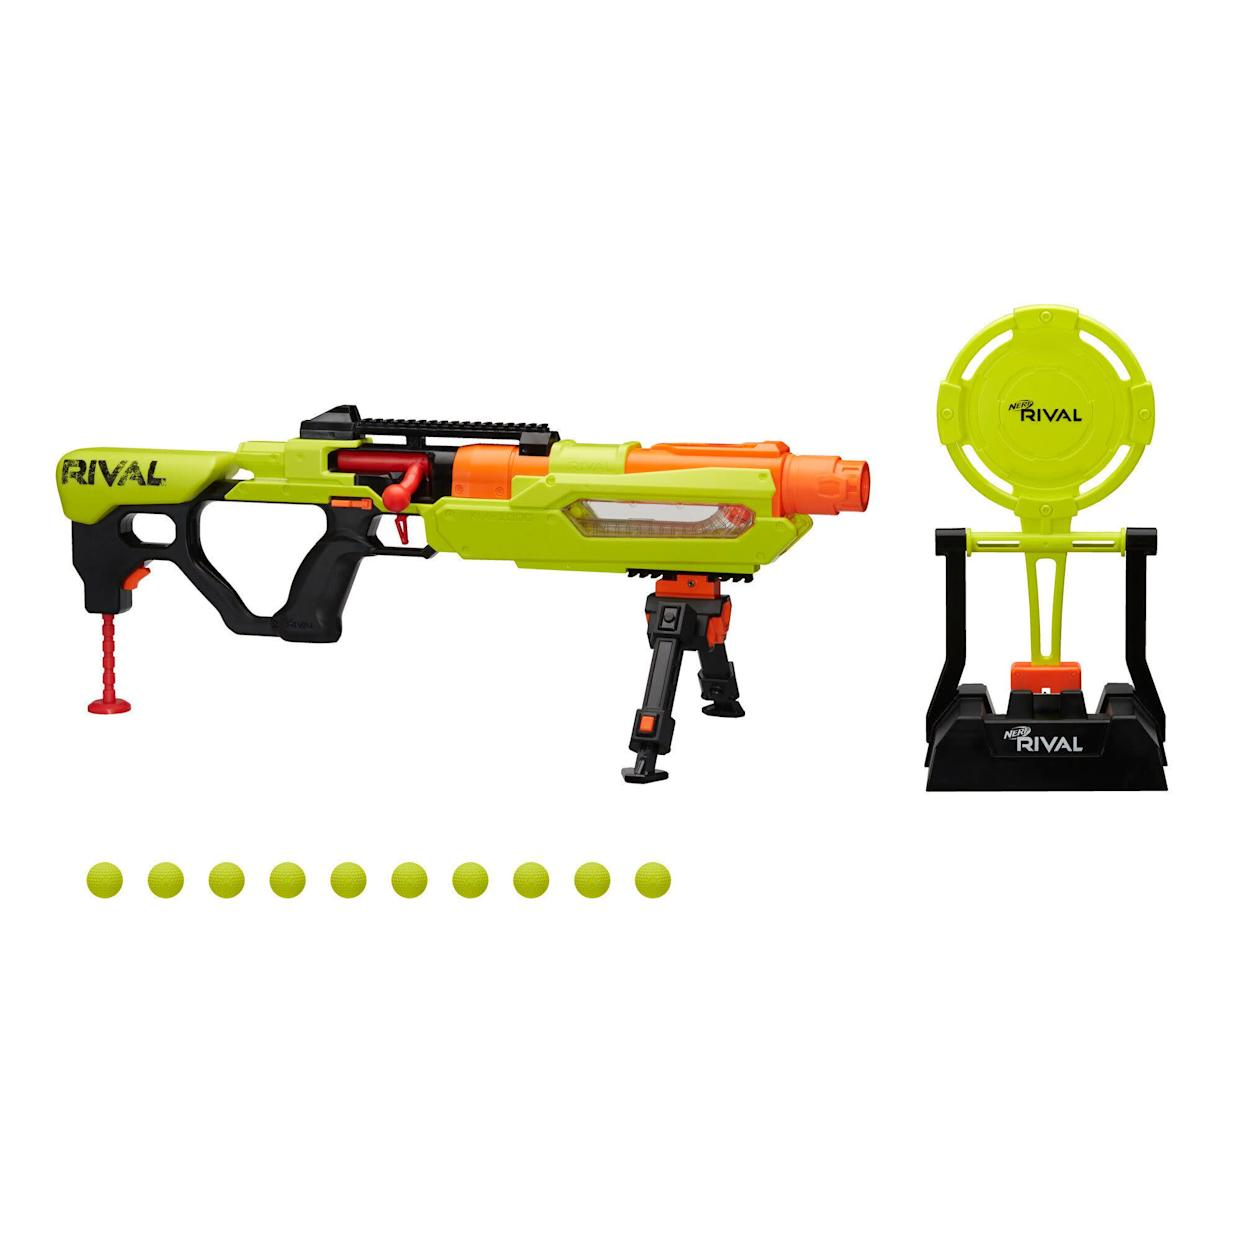 "Nerf Rival competitors can practice their skills with this Edge Series blaster and targeting set! The Jupiter XIX-1000 blaster comes with an audible reactive target that swings and makes a sound when hit, so they can check their precision with every shot. This bolt-action blaster includes 10 Official Nerf Rival rounds and has a clear window to see how many rounds are left inside. <a href=""https://fave.co/2PC5Fzp"" rel=""nofollow noopener"" target=""_blank"" data-ylk=""slk:Find it for $50 at Walmart"" class=""link rapid-noclick-resp""><strong>Find it for $50 at Walmart</strong> </a>."